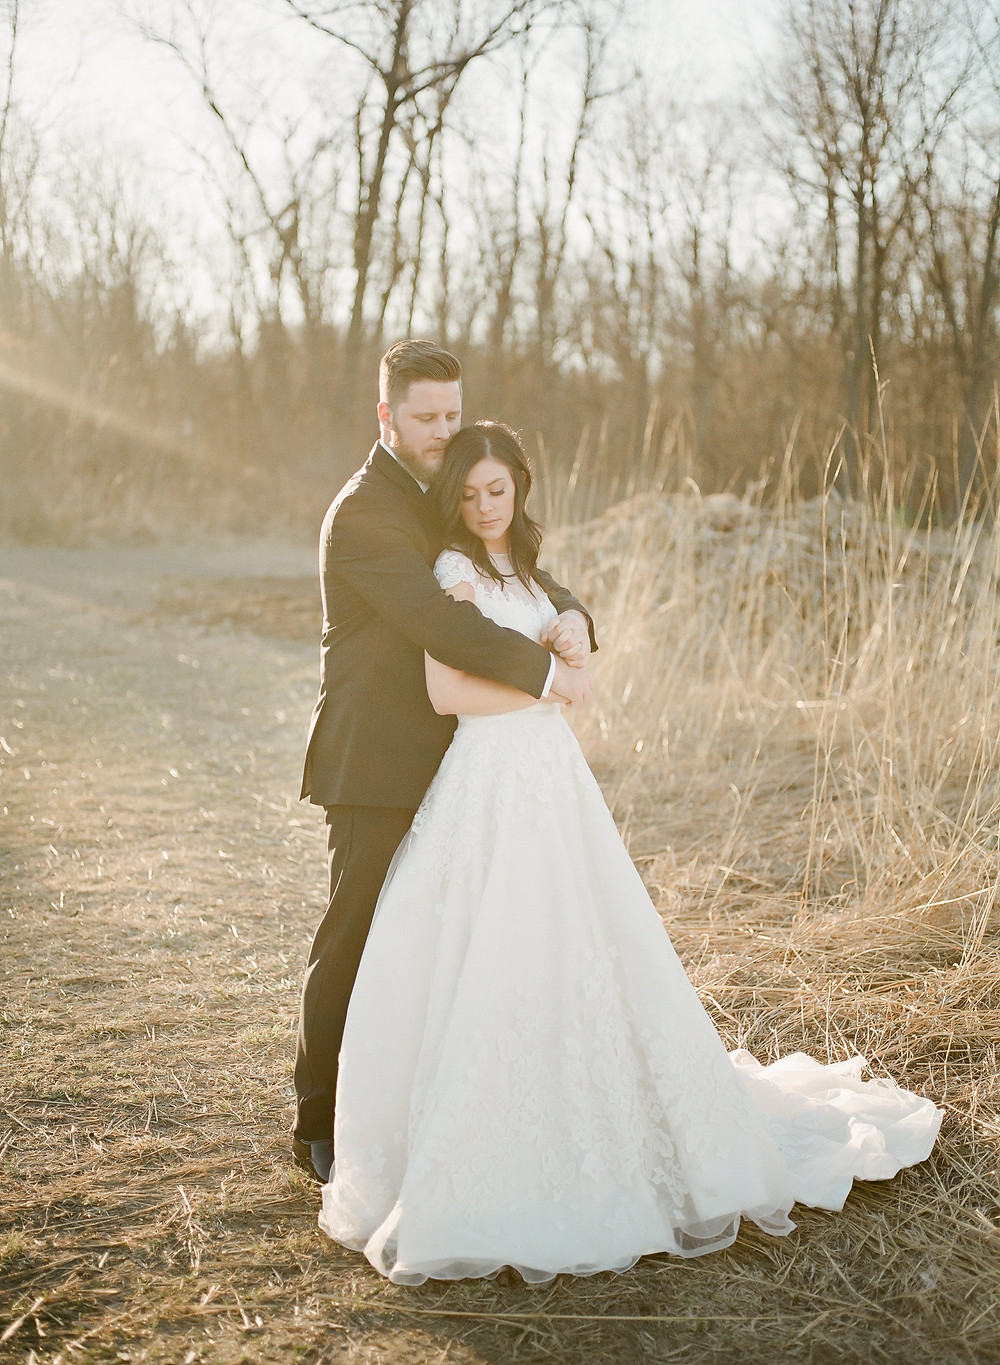 bride and groom embracing in winter field at sunset